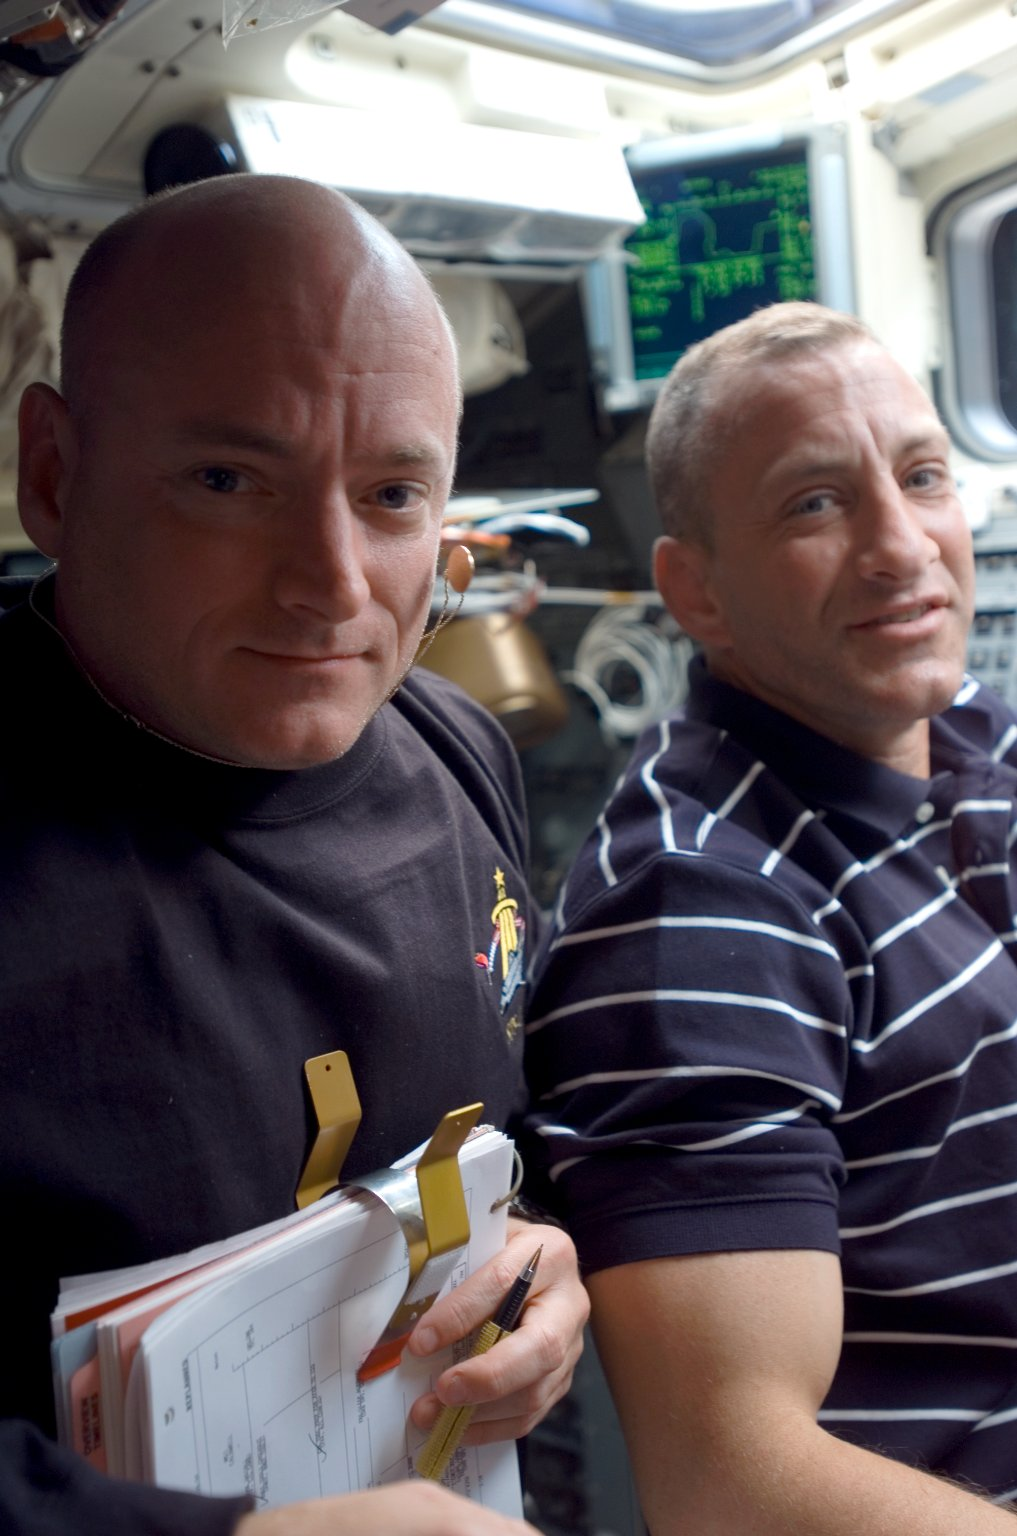 View of Hobaugh and Kelly posing for a photo on the FD during STS-118